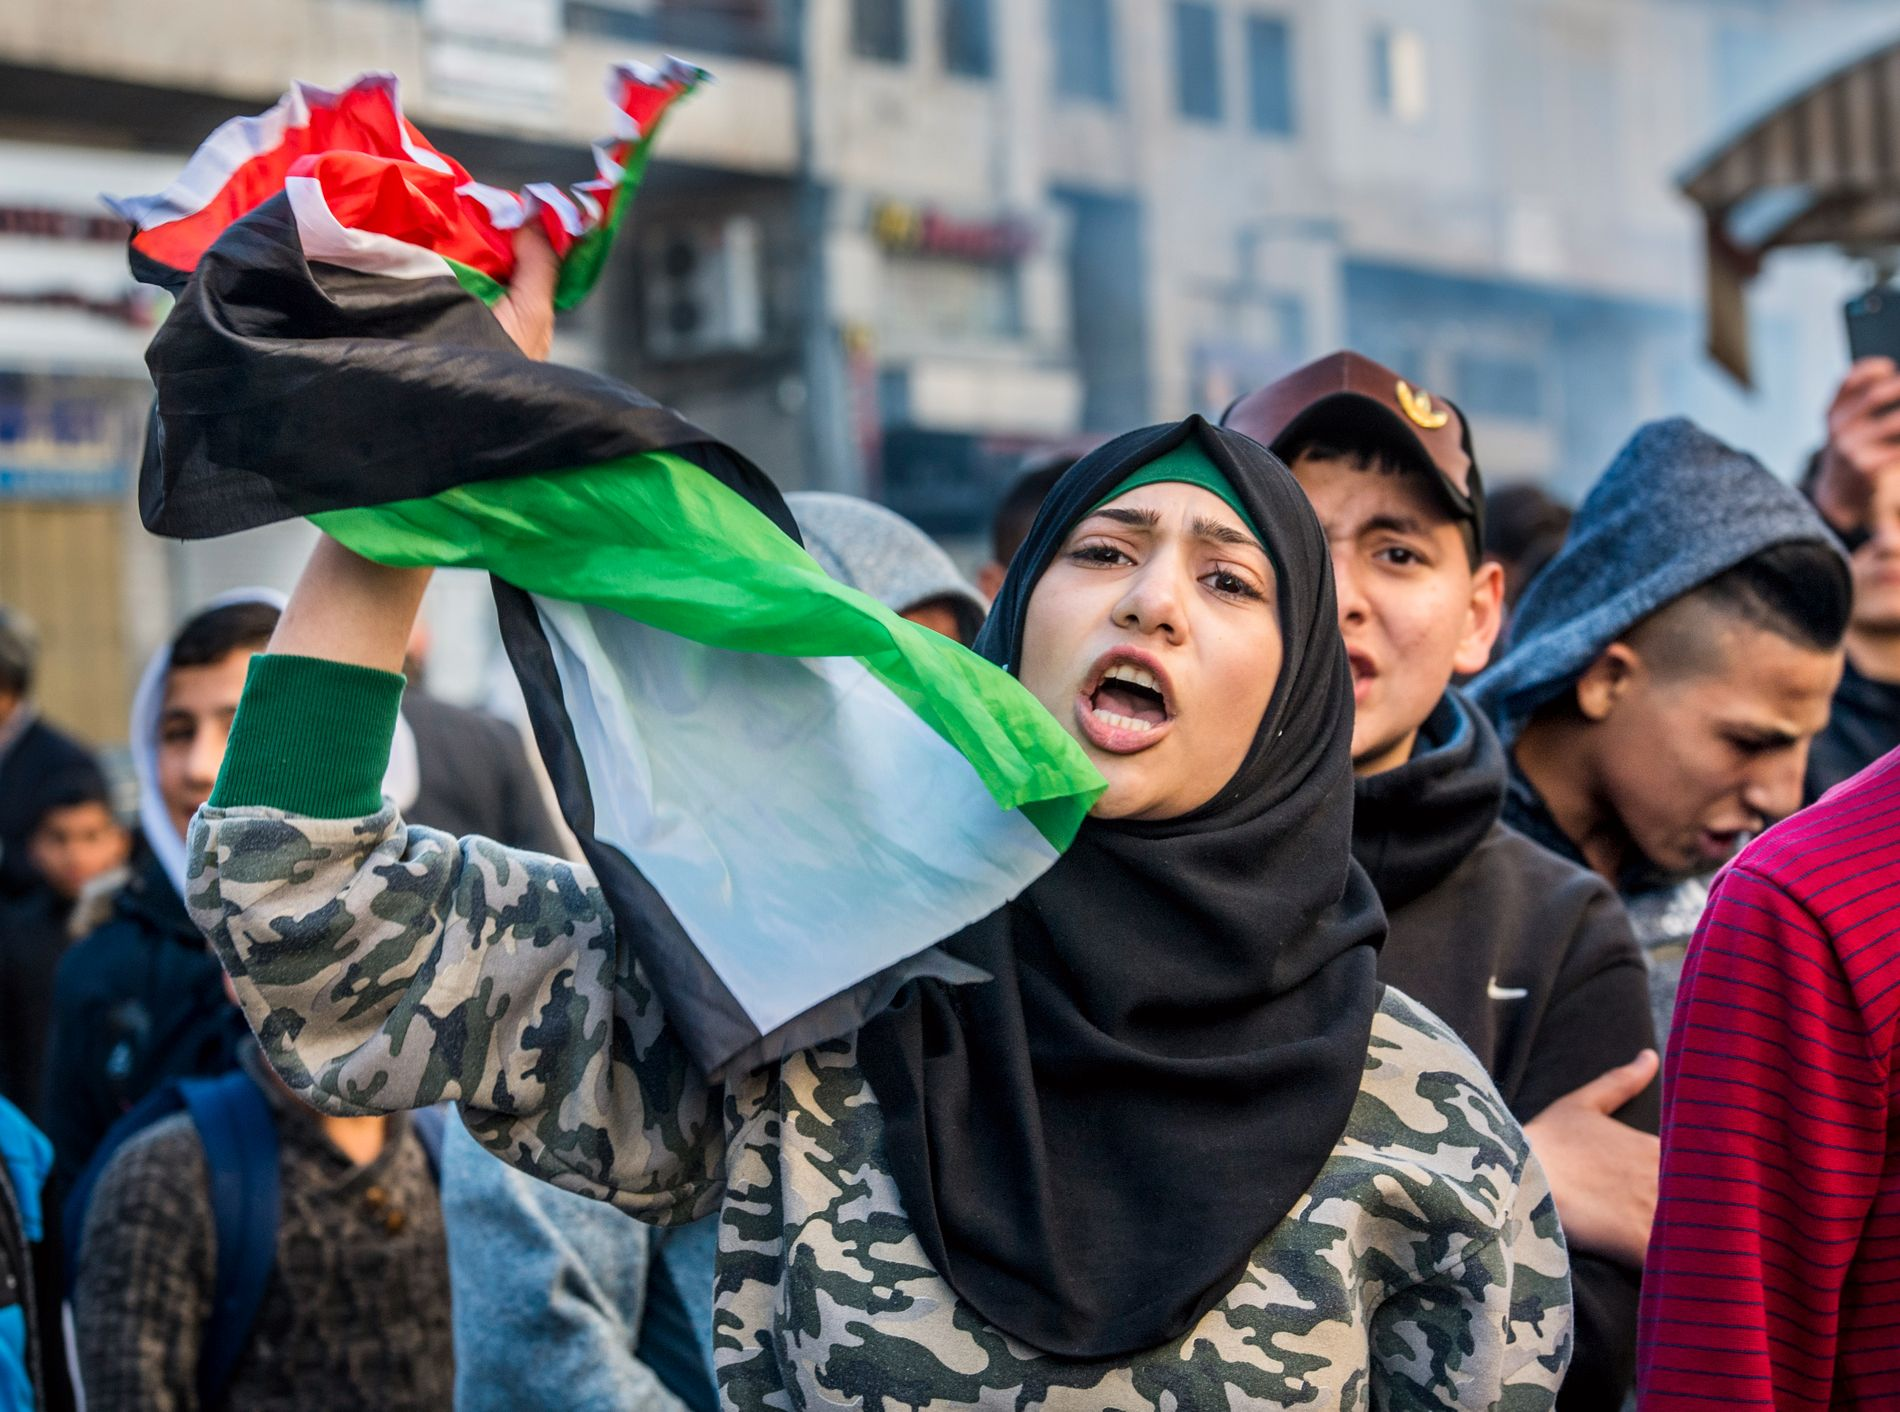 SINTE PÅ TRUMP: En kvinne holder det palestinske flagget under demonstrasjoner i Øst-Jerusalem.